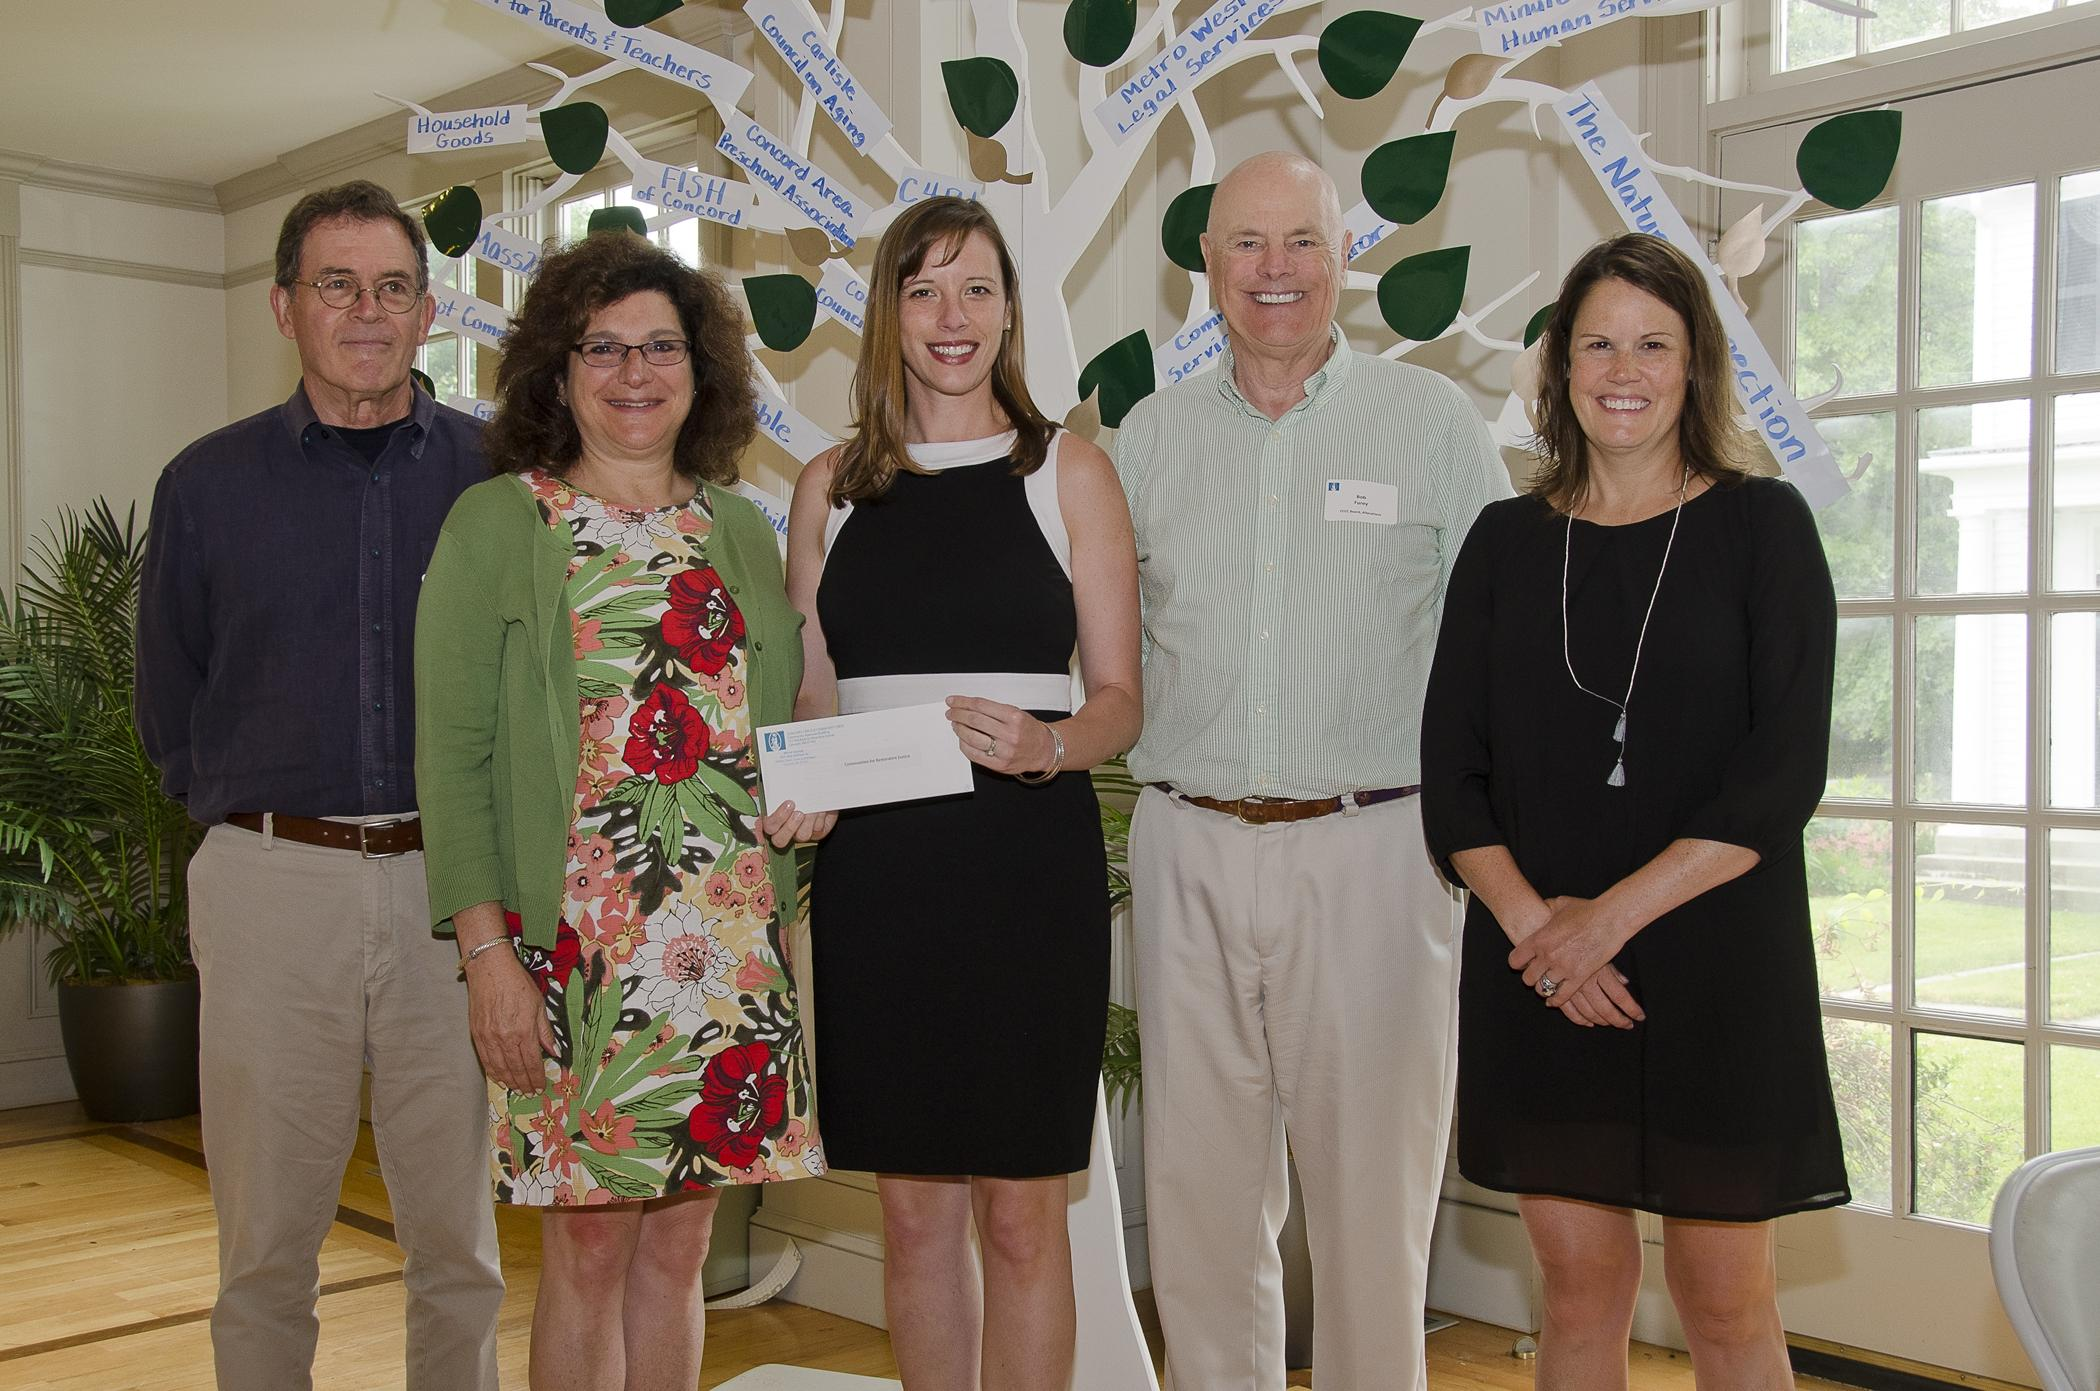 Community Chest Grant Allocations Team Members Present The Award Letter To Communities For Restorative Justice (C4RJ). Left To Right Are Jim Carter, Chest Grant Team Member; Lauren Rosenzweig Morton, C4RJ Board President; Erin Freeborn, C4RJ Executive Director; Bob Furey, Chest Grant Team And Board Member; And Ali Sullivan, Chest Grant Team Member. Courtesy Photo / Harley Freedman